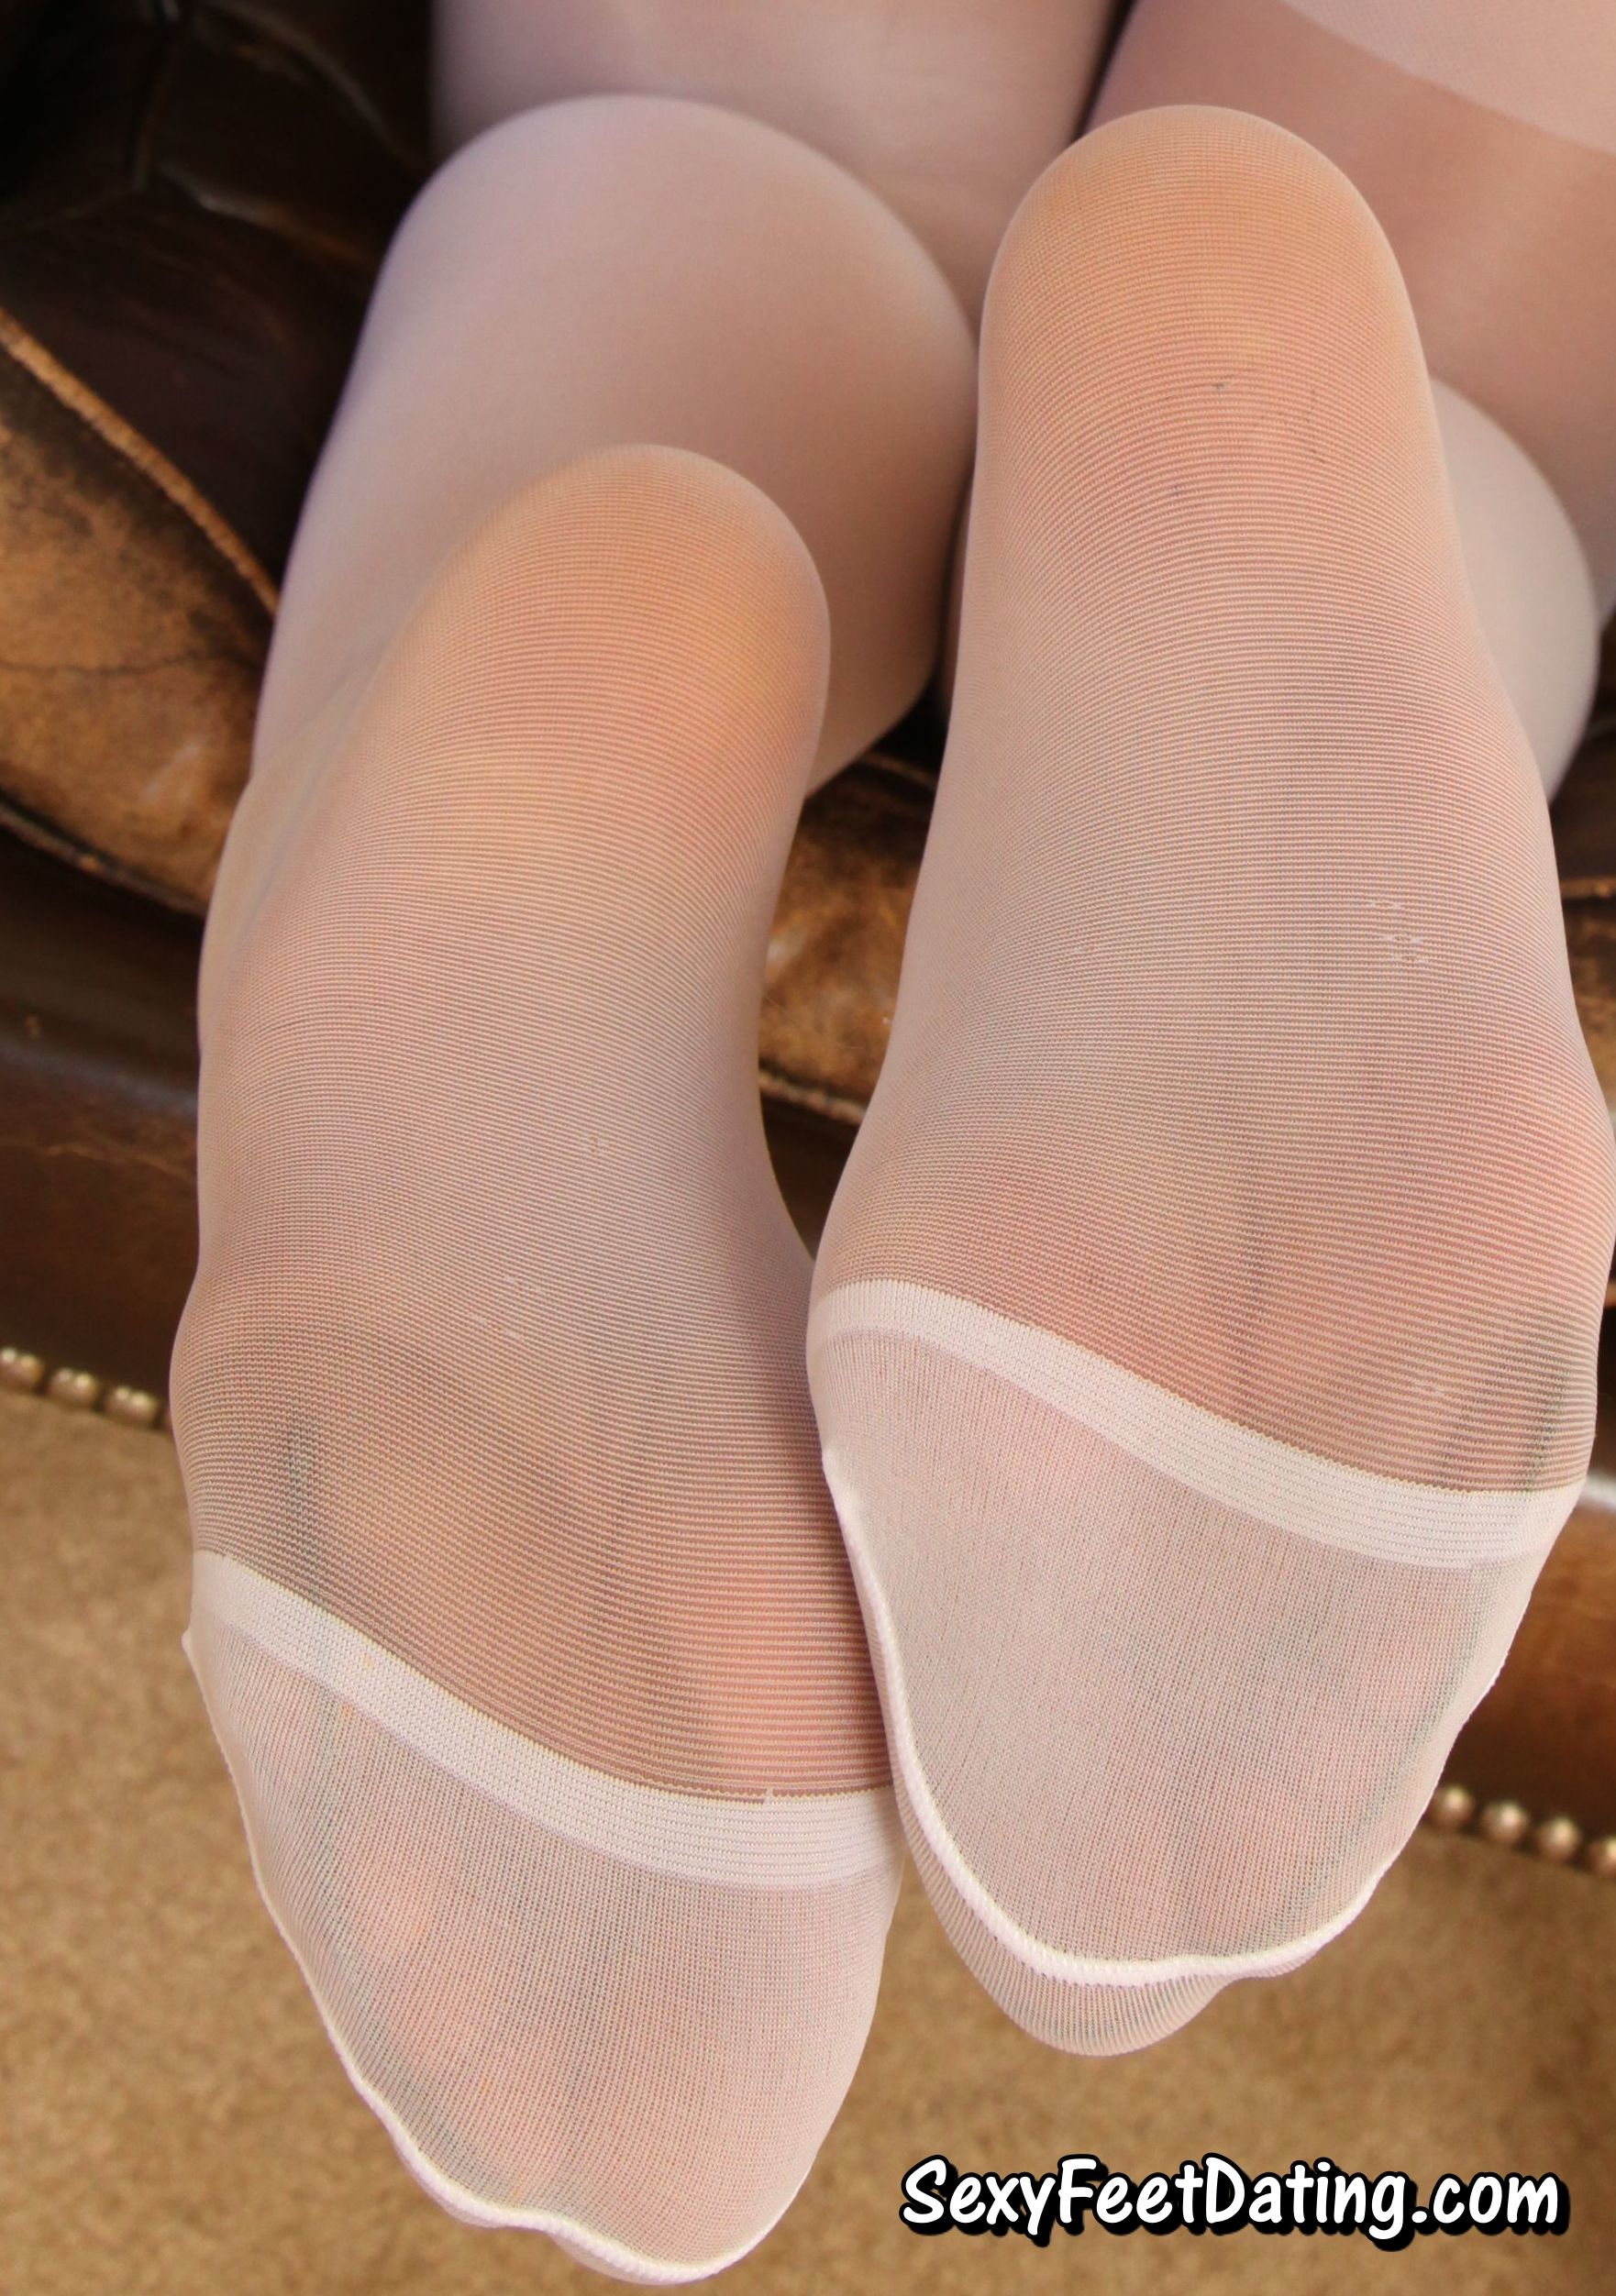 Sexy foot fetishes